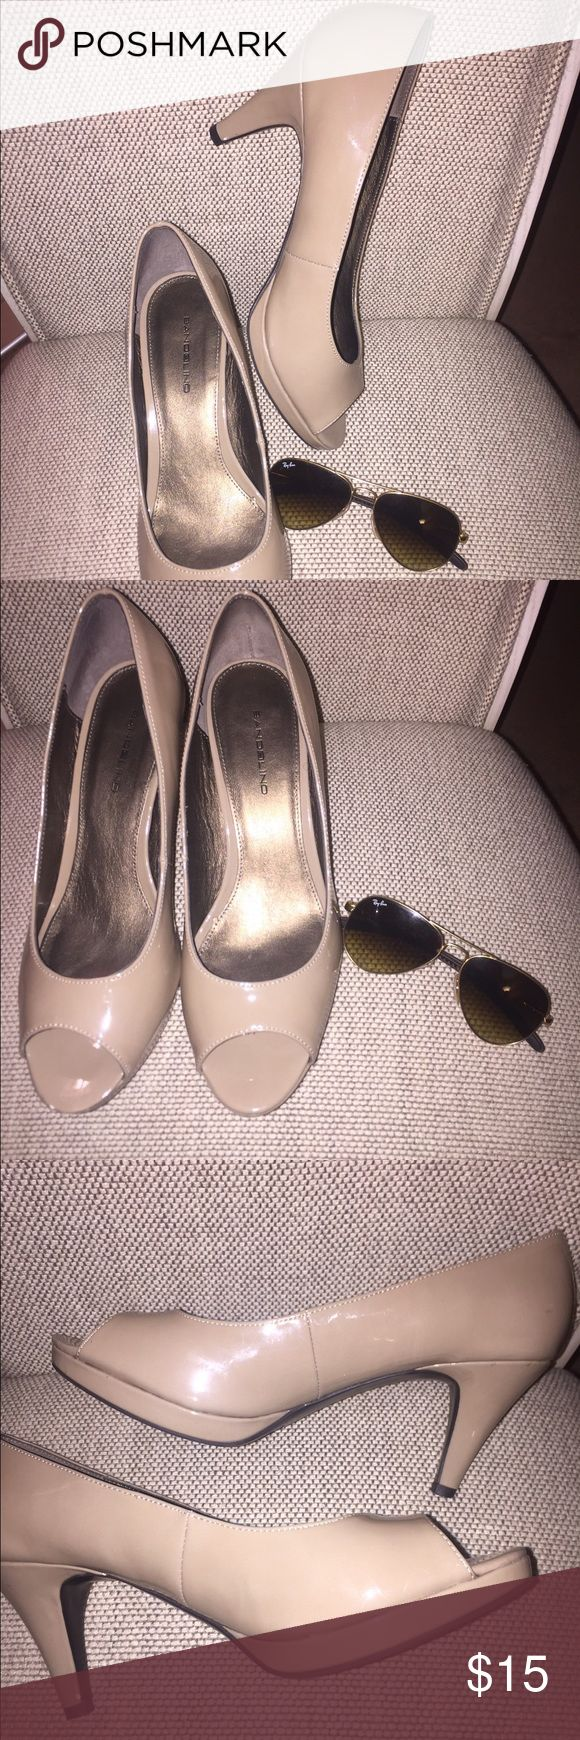 Sharp 2.5 inch ladies pump heels Ladies 2.5 inch beige patent faux leather pumps 👠 gently used Bandolino Shoes Heels